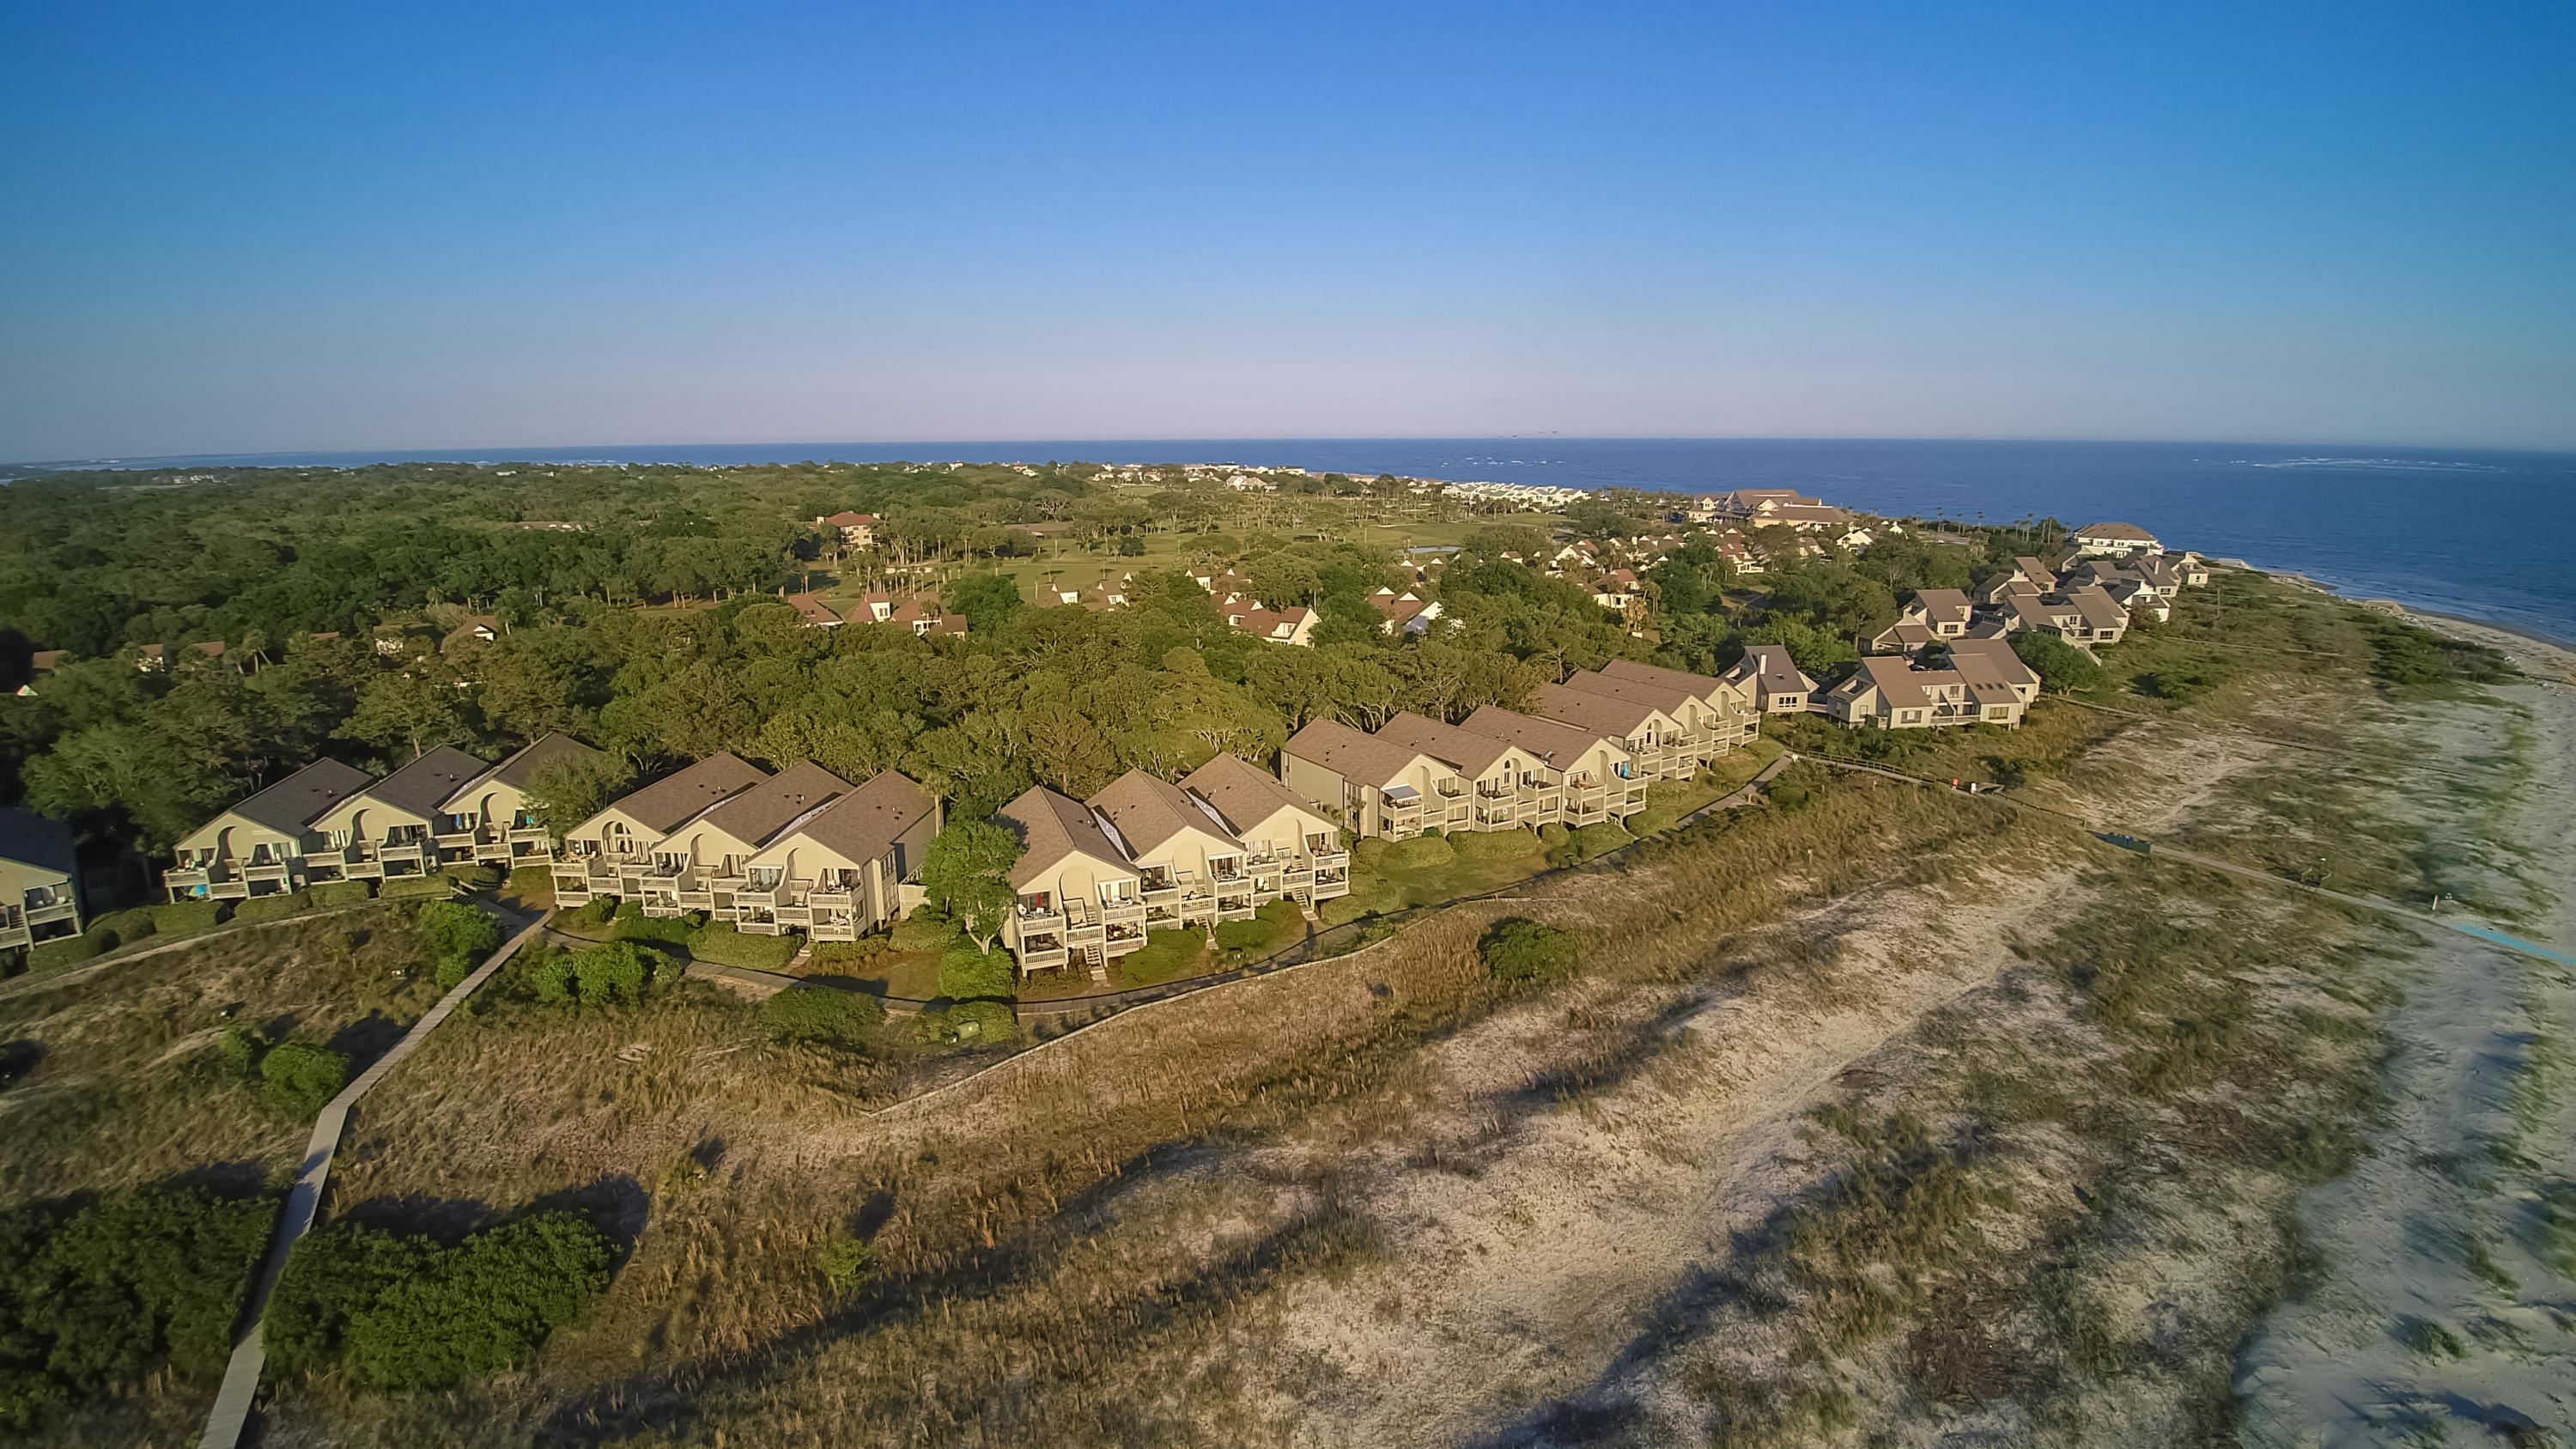 Seabrook Island Homes For Sale - 1329 Pelican Watch Villas, Seabrook Island, SC - 20